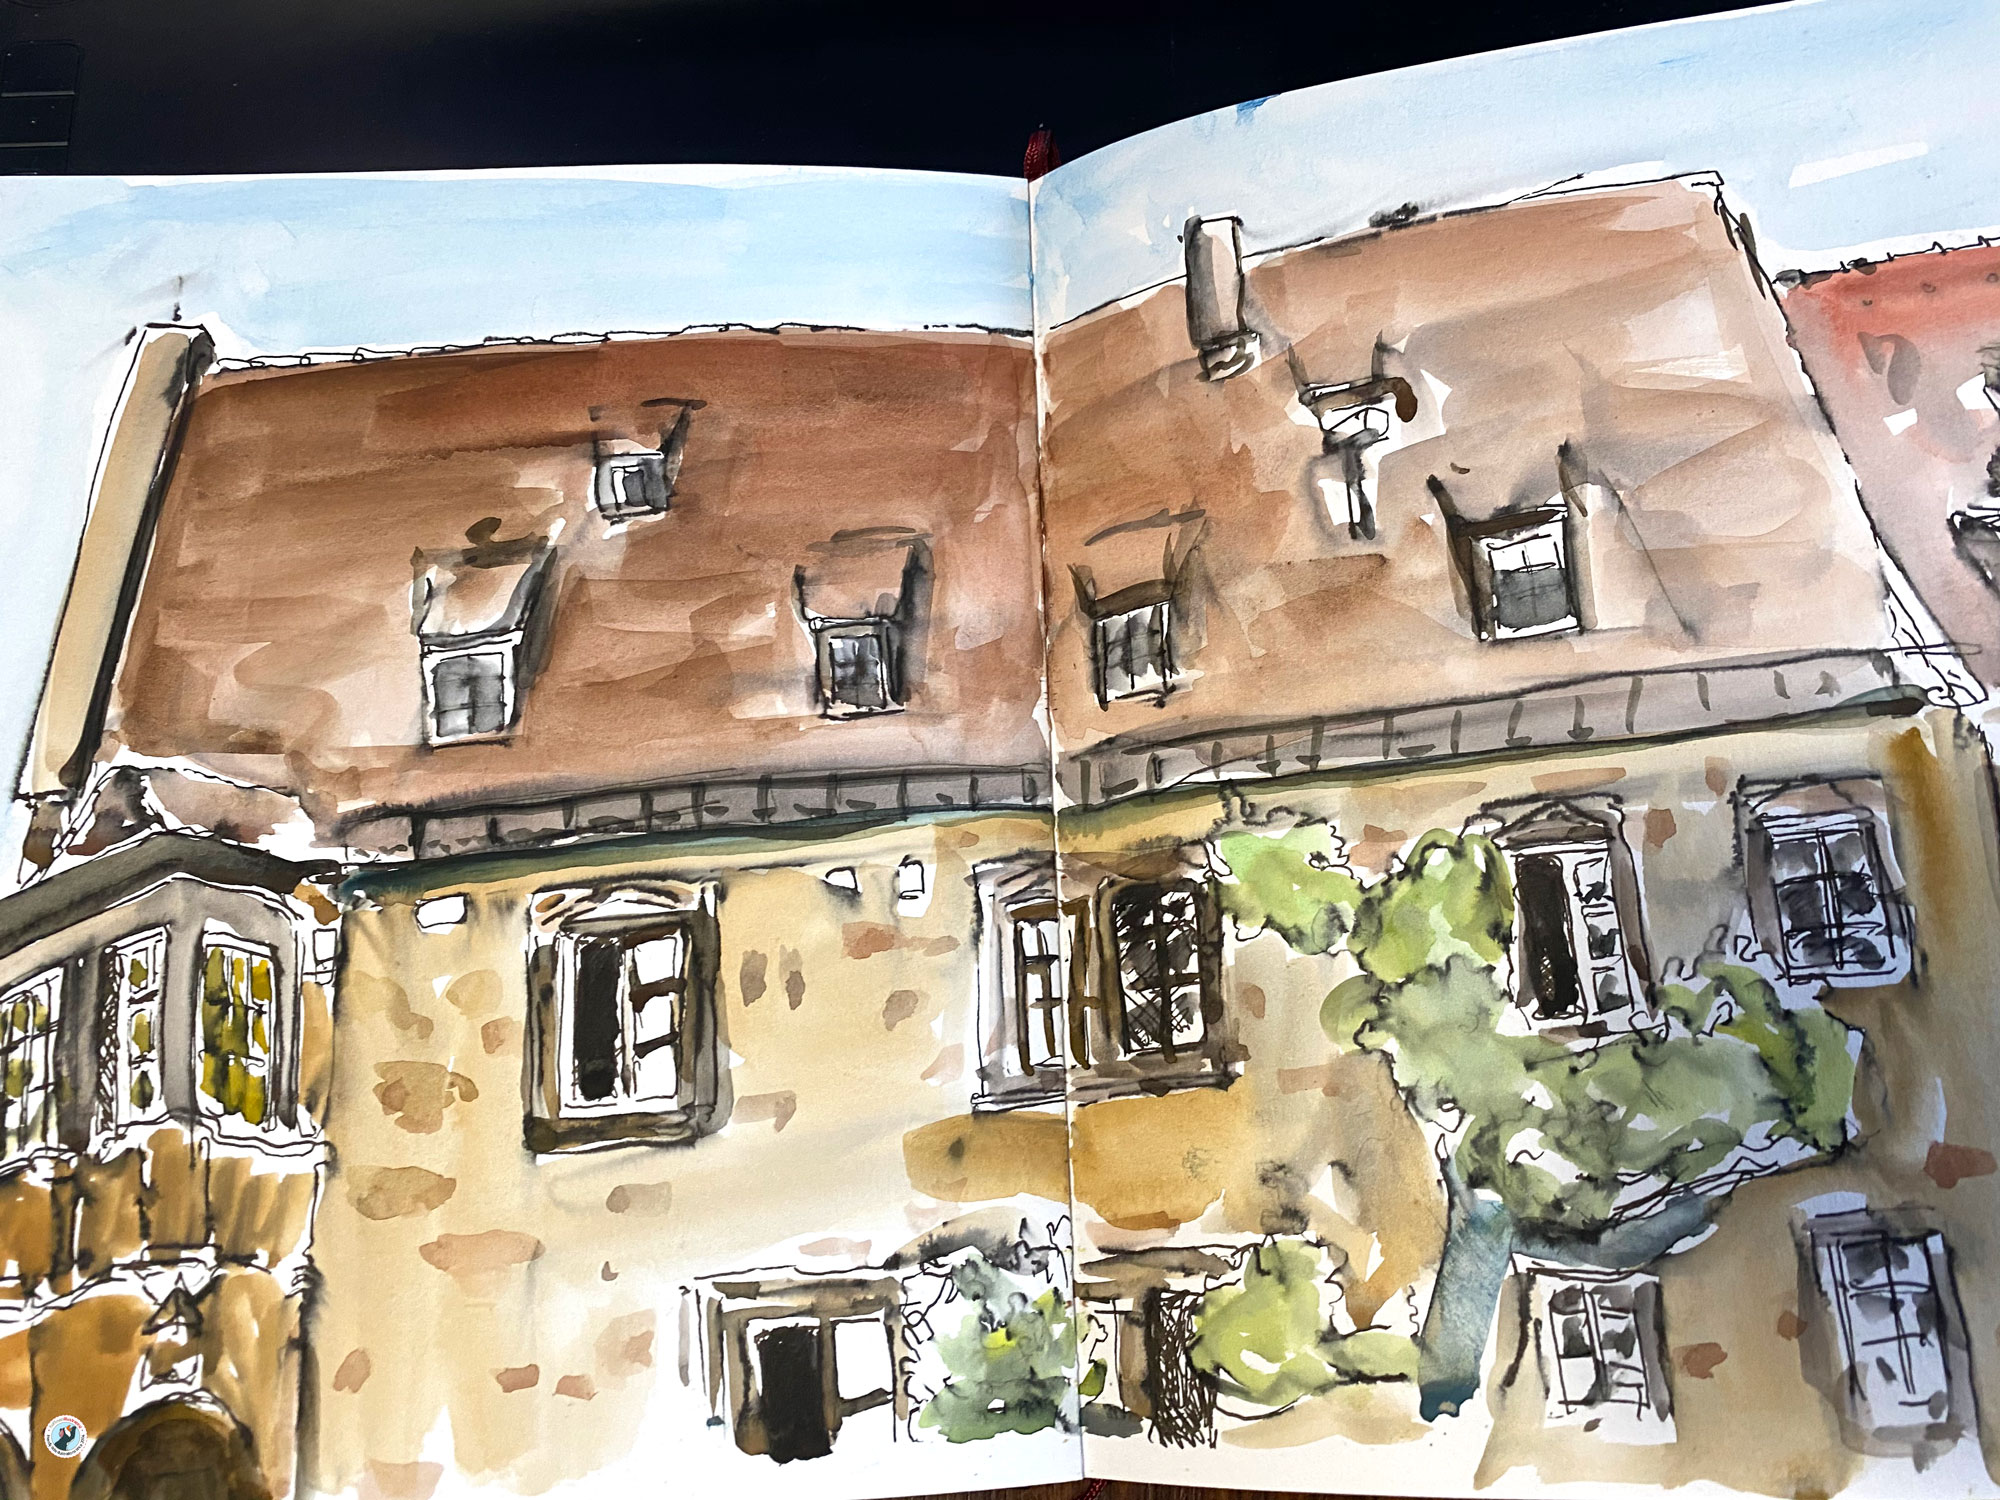 This is an urban sketch of the famous Kätchen of Heilbronn house on the Heilbronner marketplace